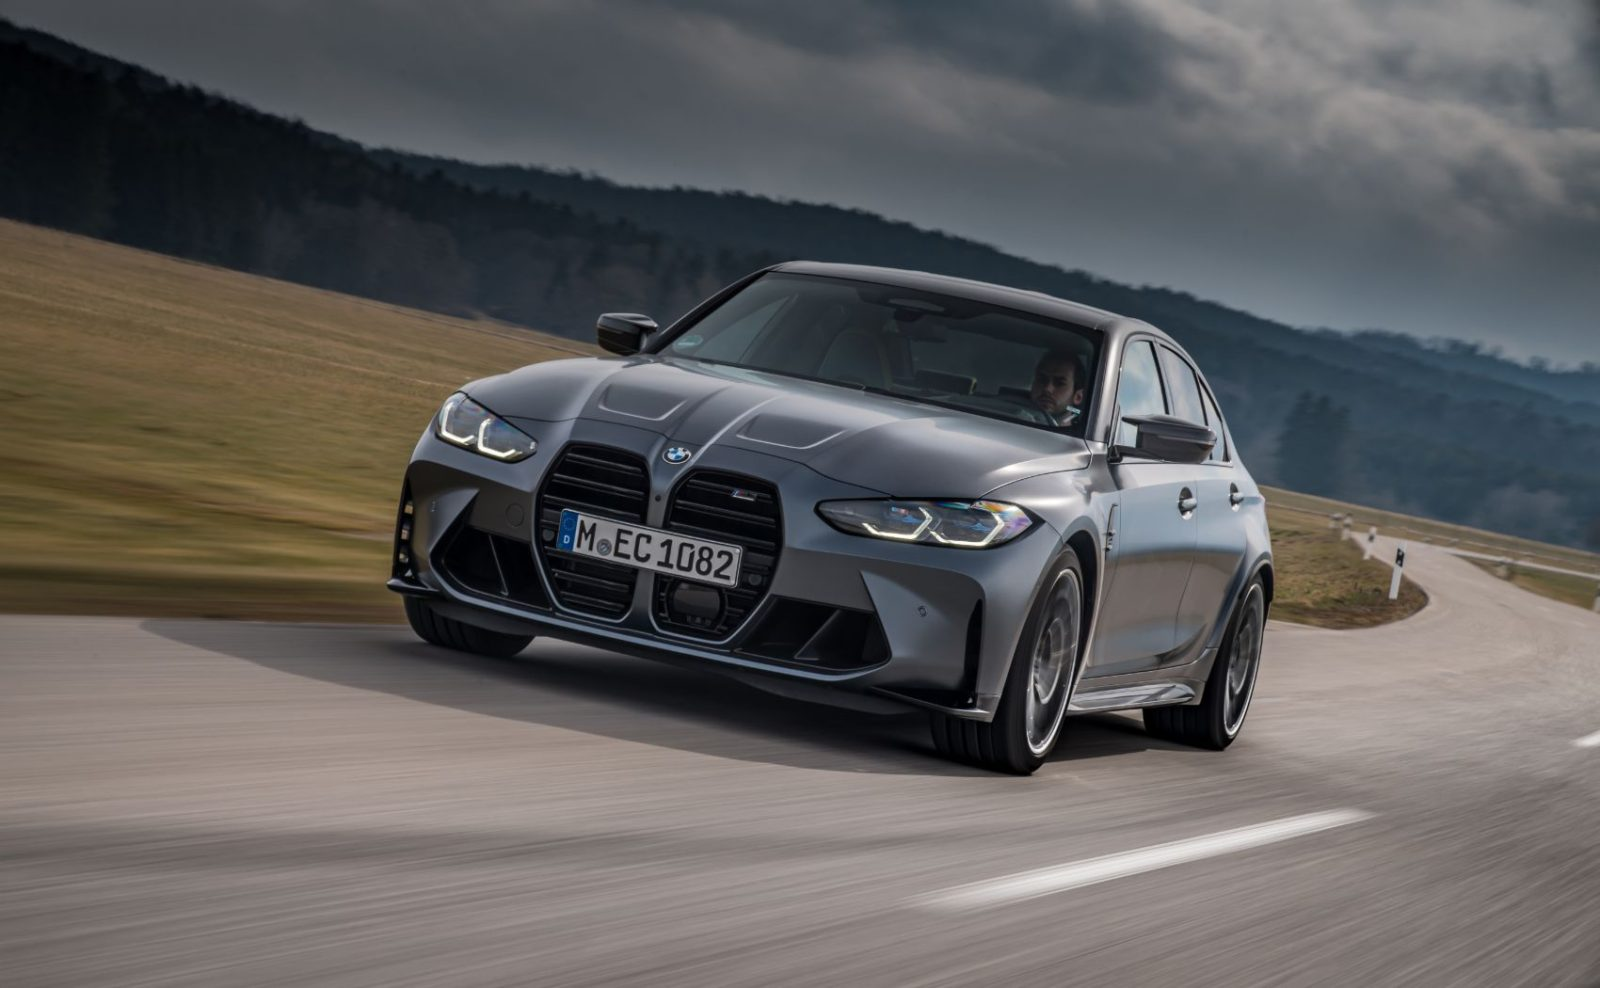 bmw-m-gets-its-old-boss-back,-paves-way-for-electrification